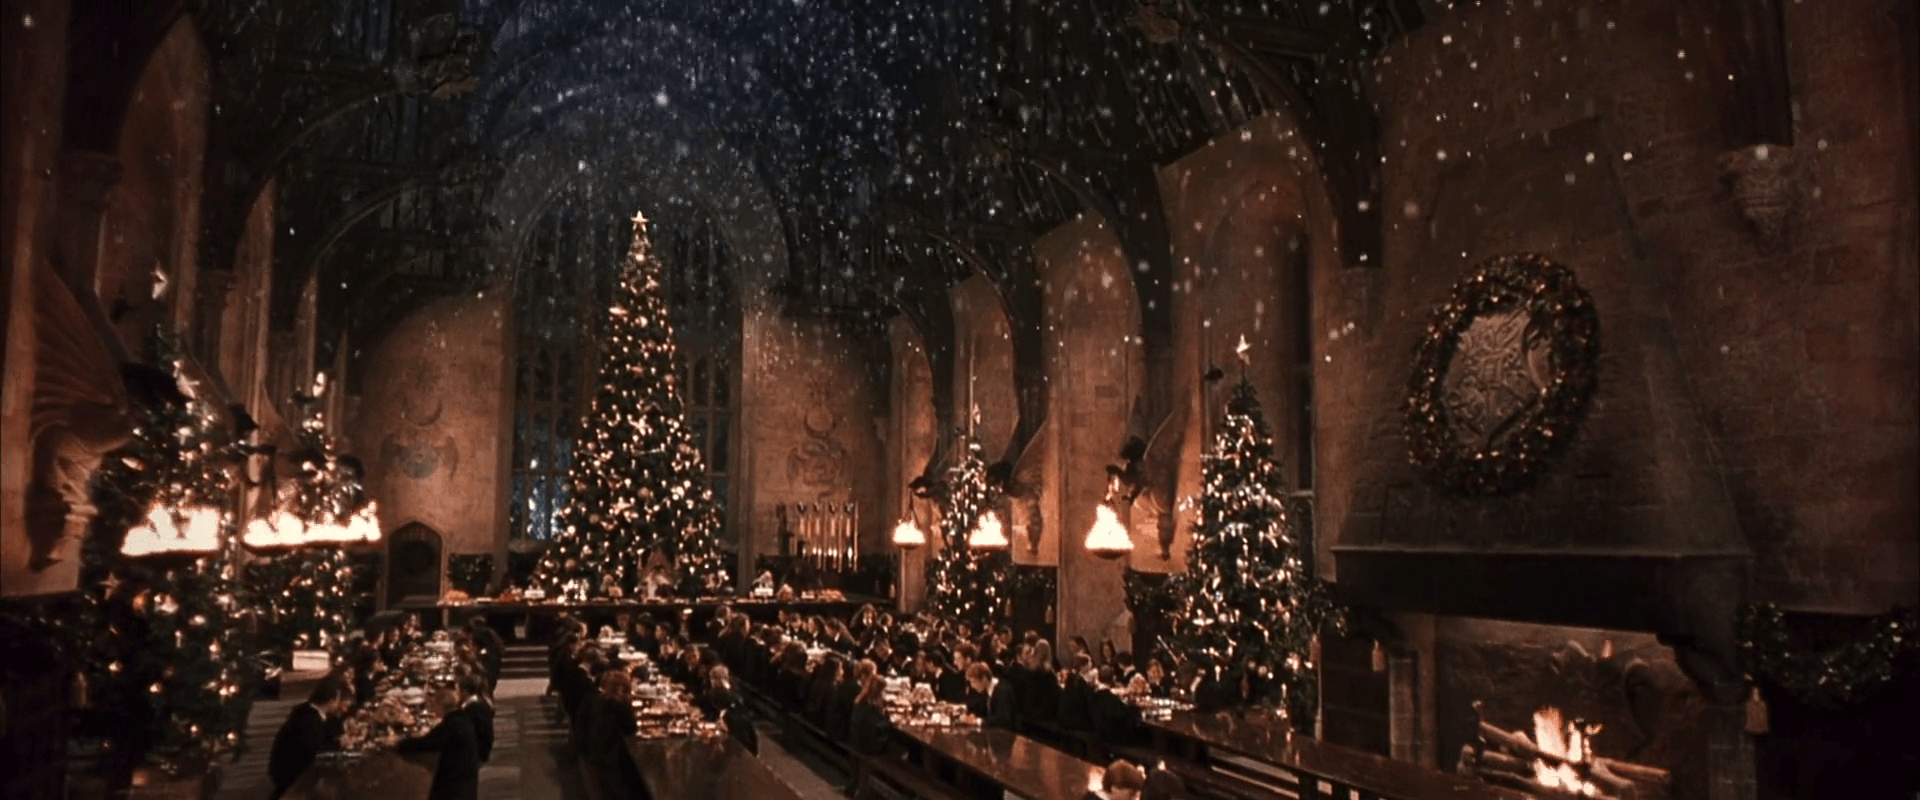 Christmas Harry Potter.Harry Potter Christmas Wallpapers Top Free Harry Potter Christmas